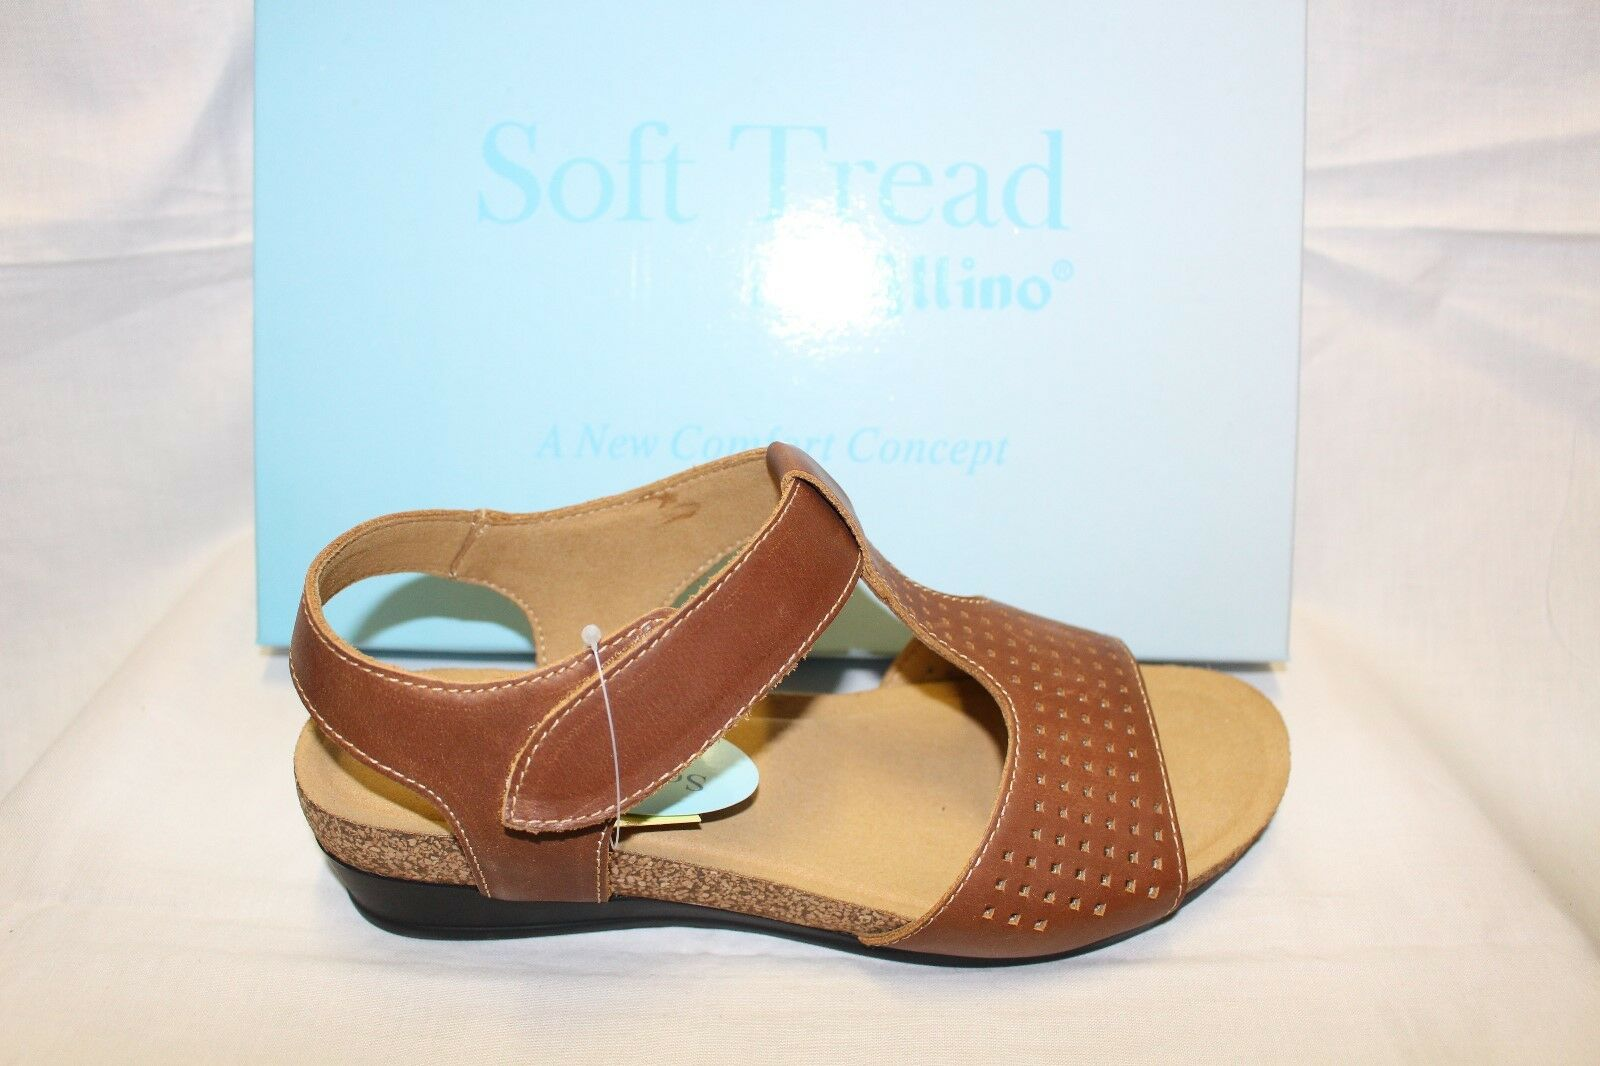 LADIES SHOES/FOOTWEAR - Allino Sandal Soft tread Biento Tan